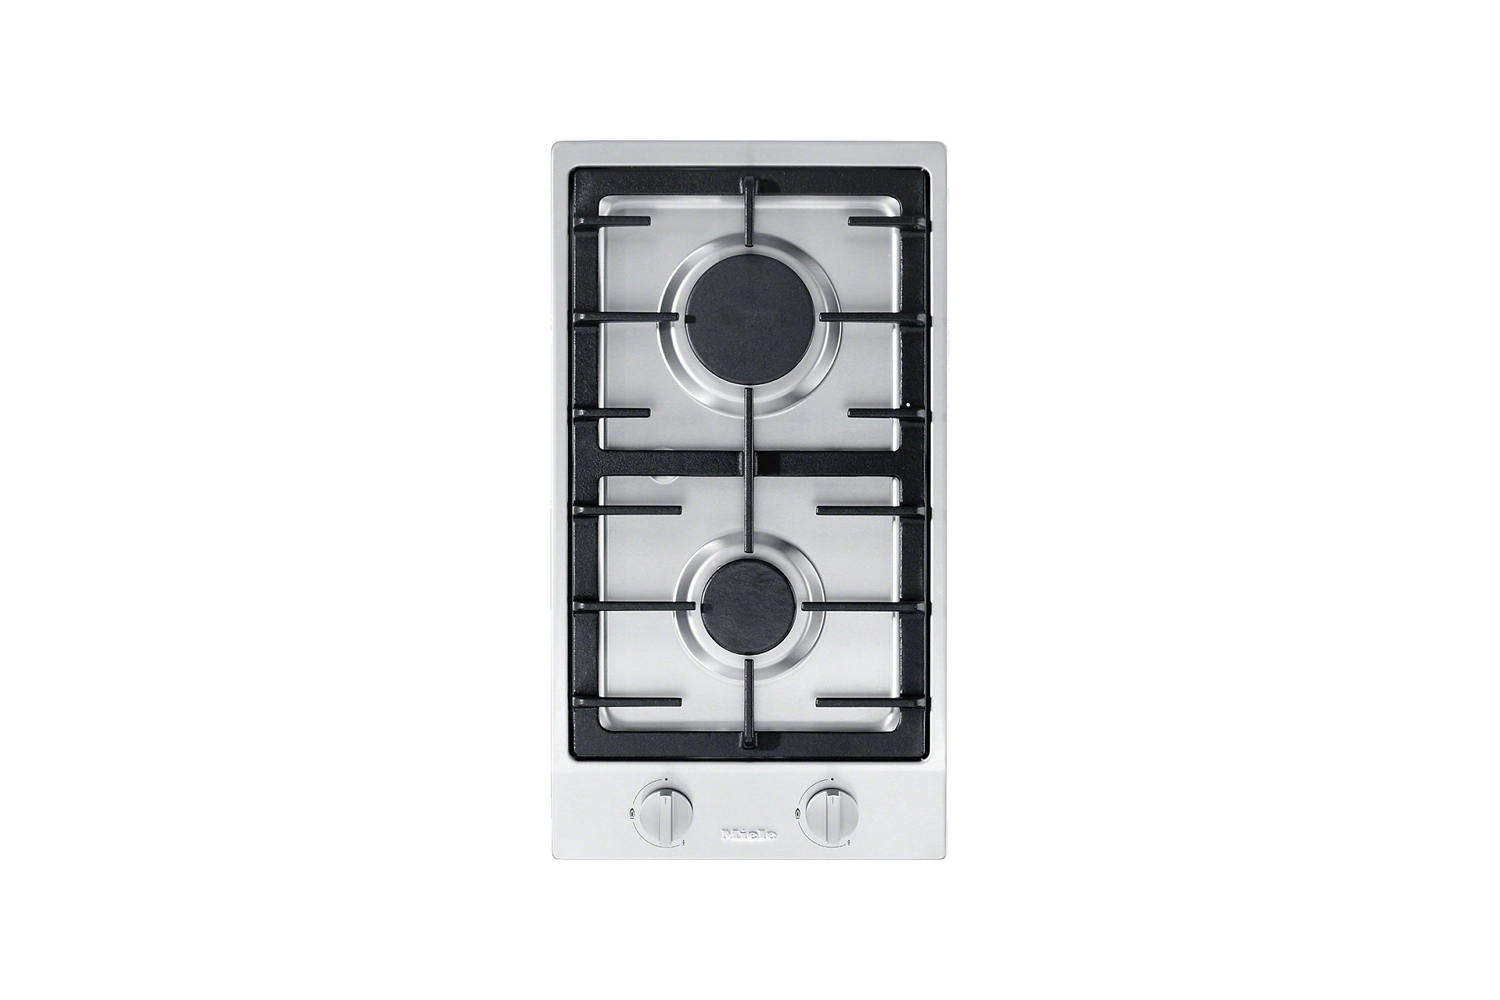 Steal This Look A Stylish Camp Kitchen in a Plywood Summer Cabin The Miele \1\2 Inch Natural Gas Double Stainless Steel Burner is \$\1,049 at ABT.